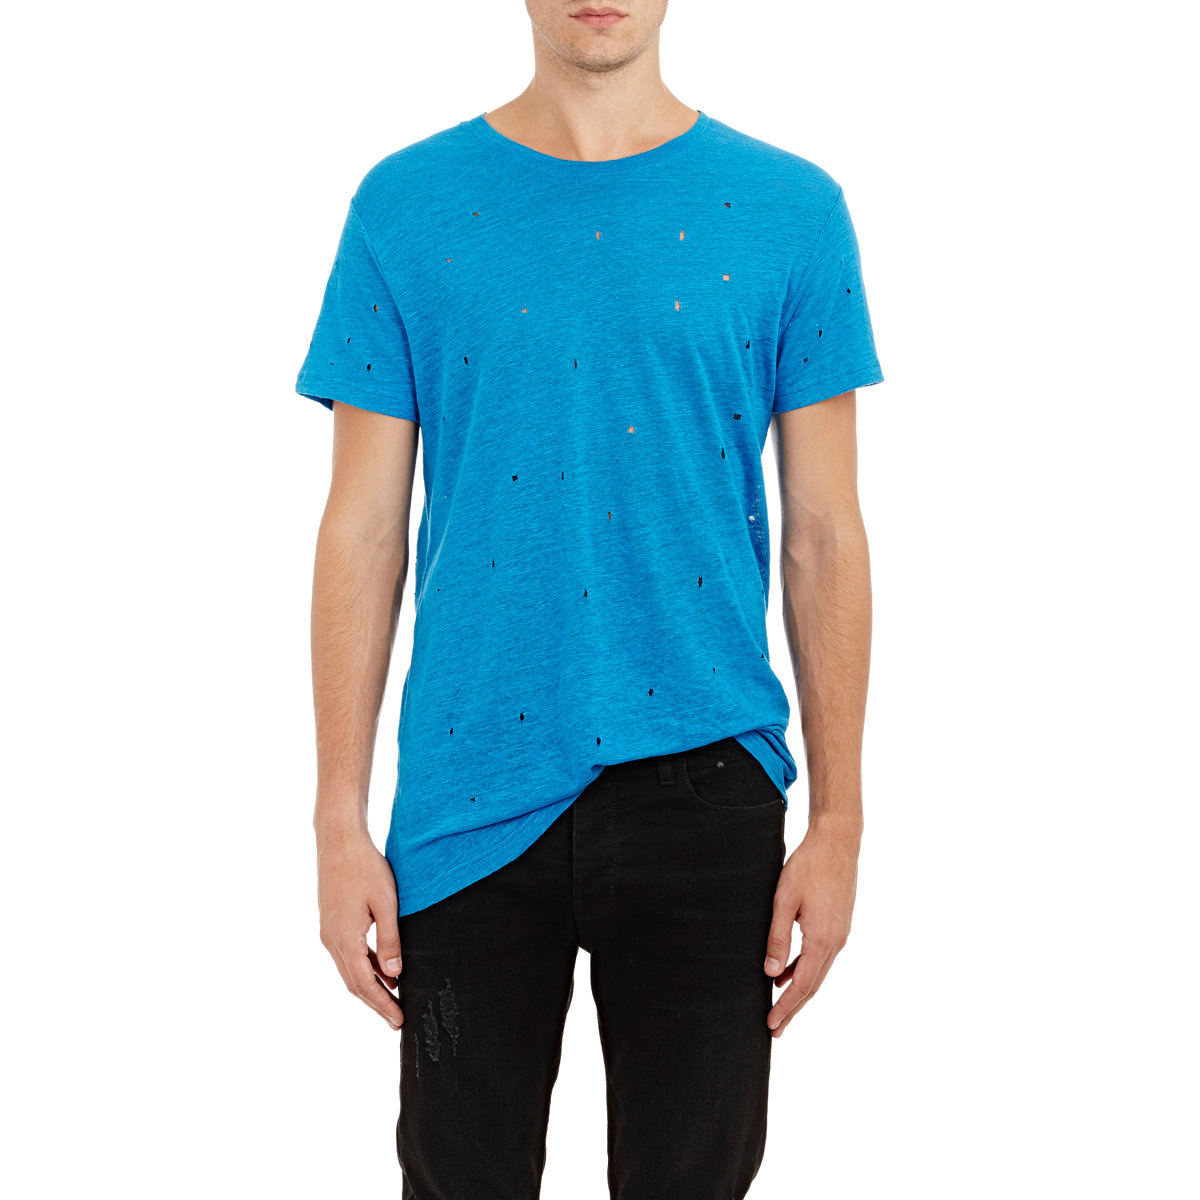 Iro distressed wase t shirt in blue for men lyst for How to make a distressed shirt